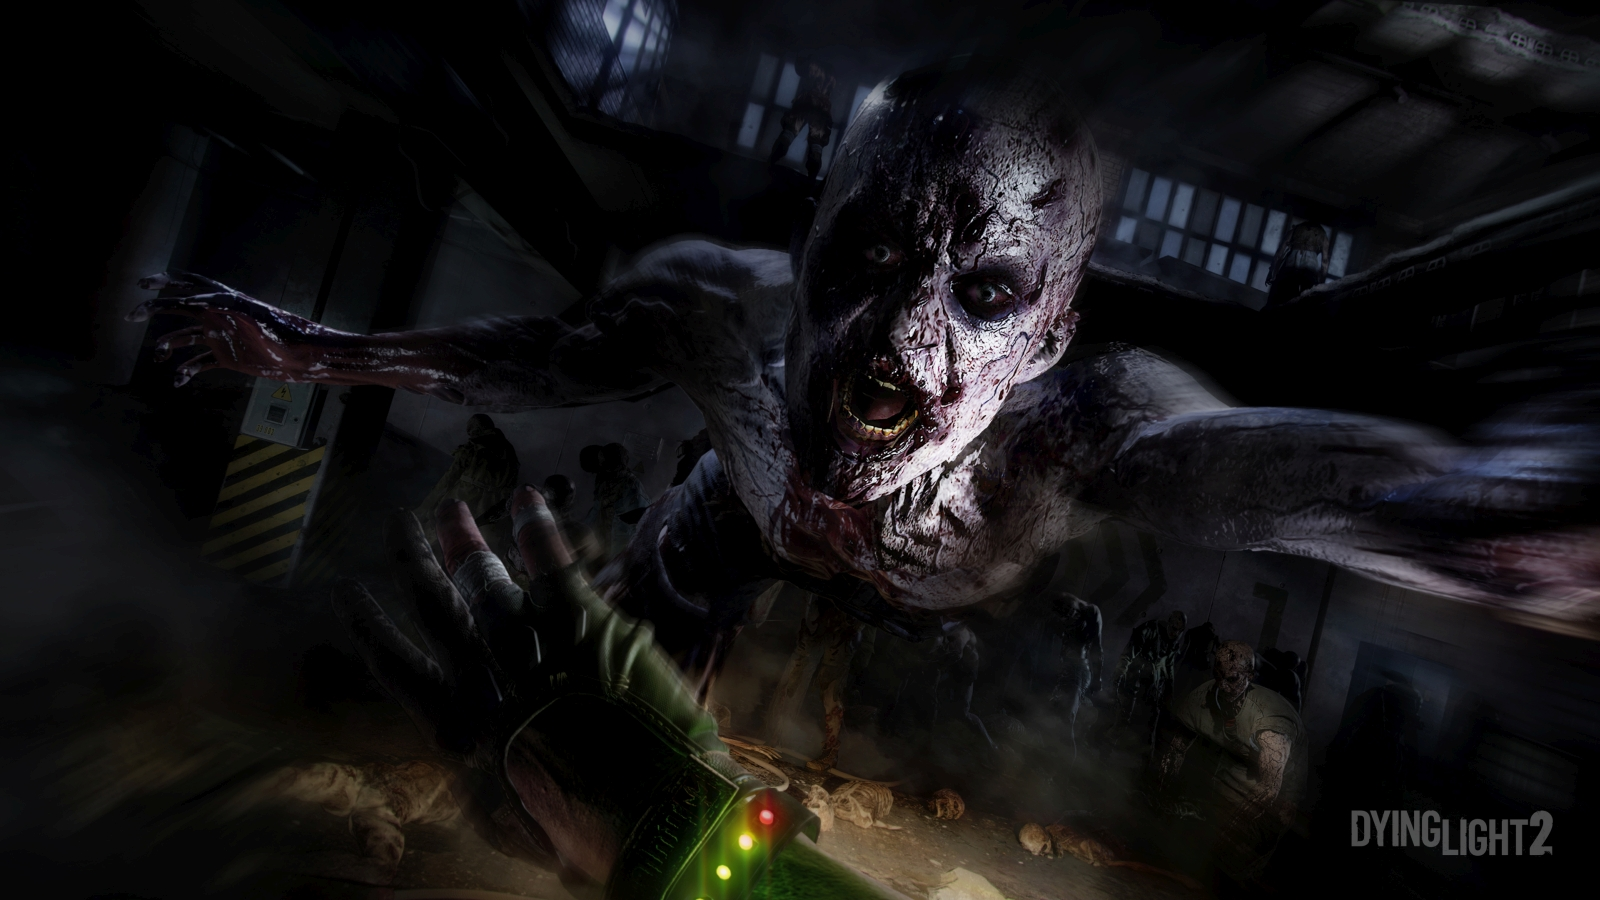 Dying Light 2 - 3